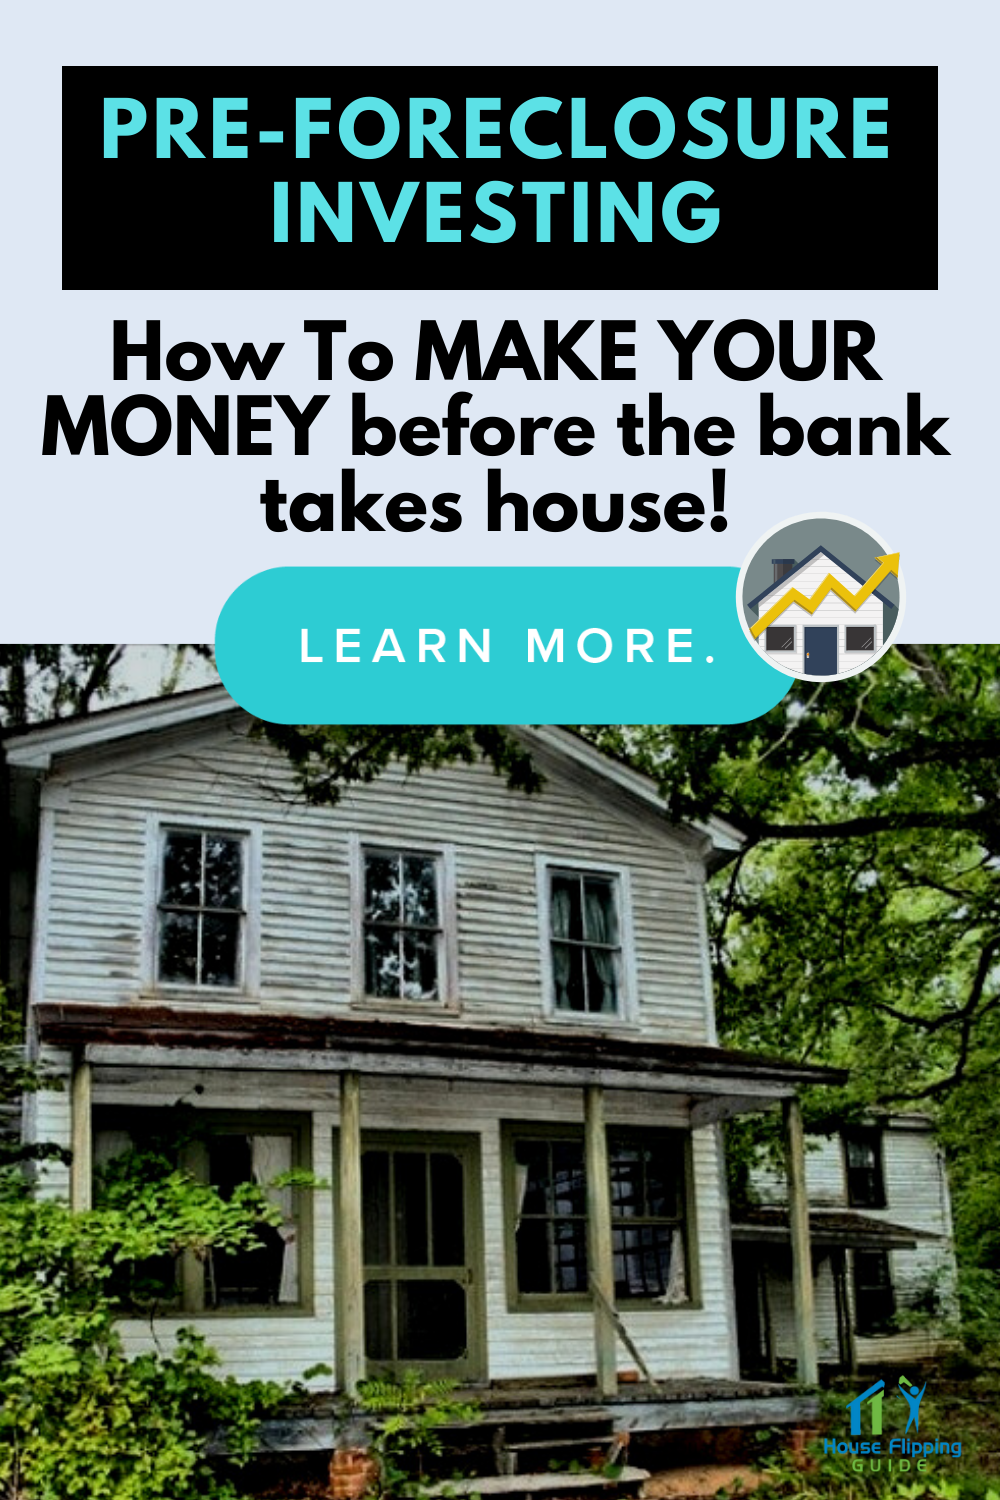 Pre-Foreclosure Investing:  How To Make Your Money Before the Bank Takes the House!